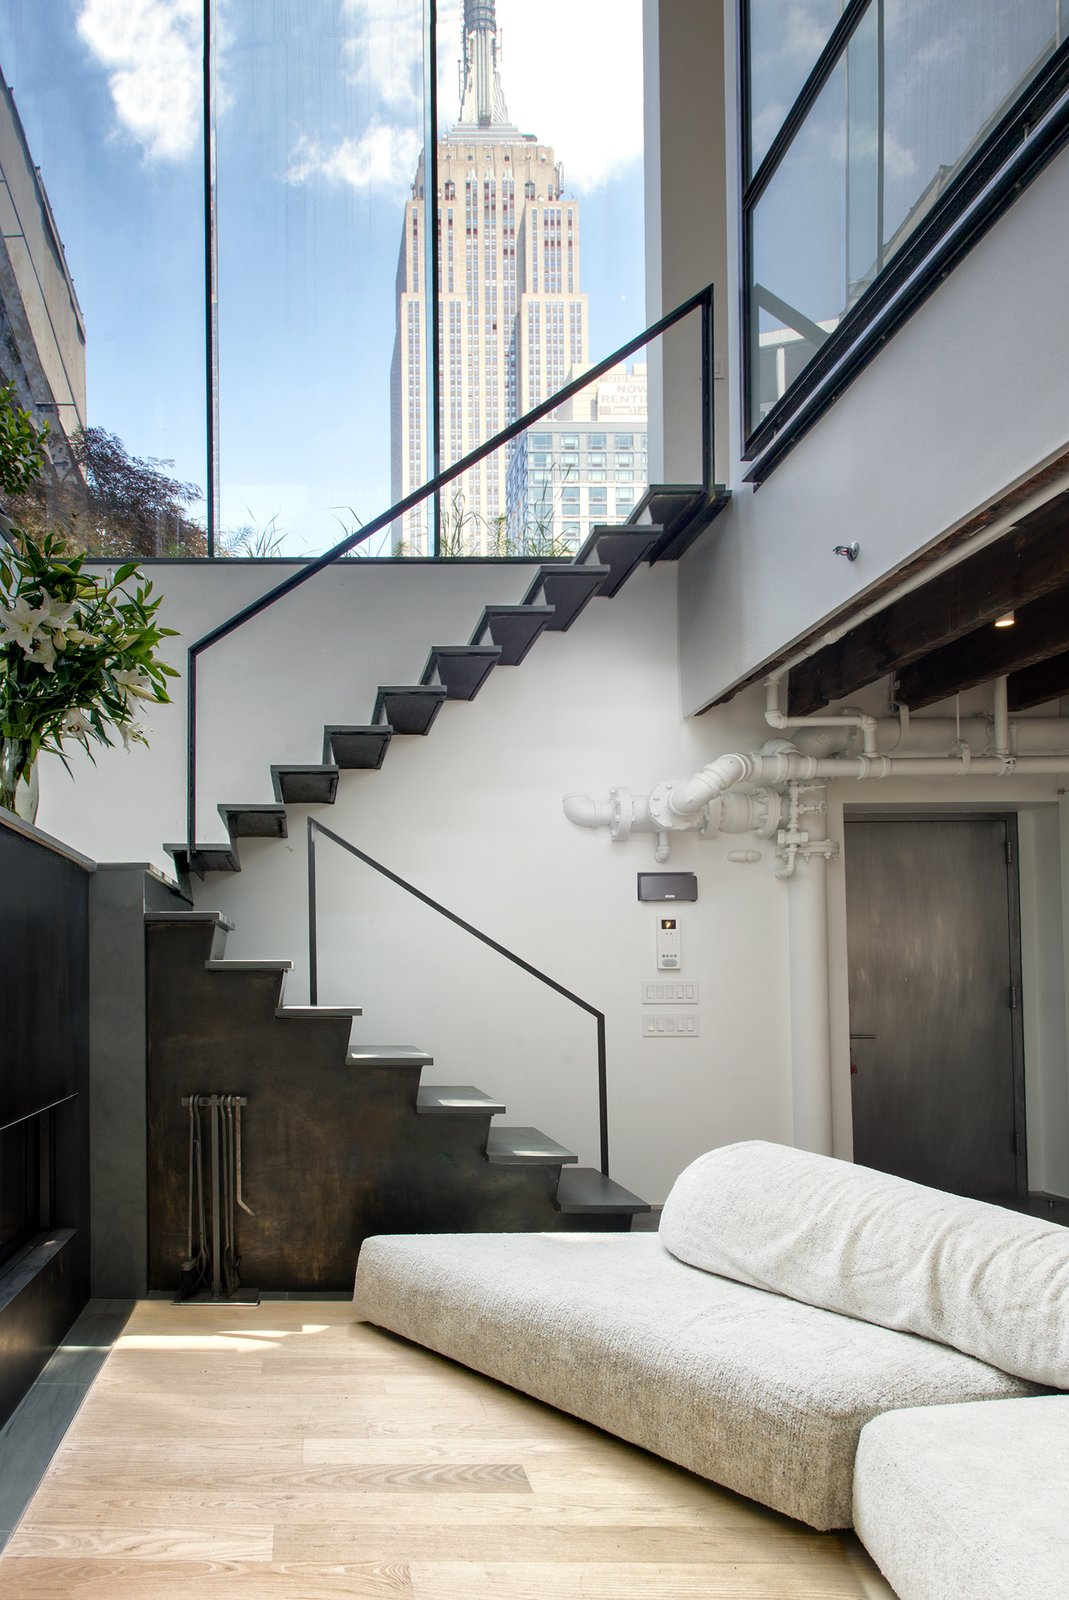 A blackened steel staircase by Delform leads to the upper level. A tall glass clerestory frames views of the Empire State Building and reinforces the indoor/outdoor motif Tagged: Living Room, Sofa, Light Hardwood Floor, and Ceiling Lighting.  Photo 4 of 10 in A Rooftop Addition on a 19th-Century Building Suits a Growing Family's Needs